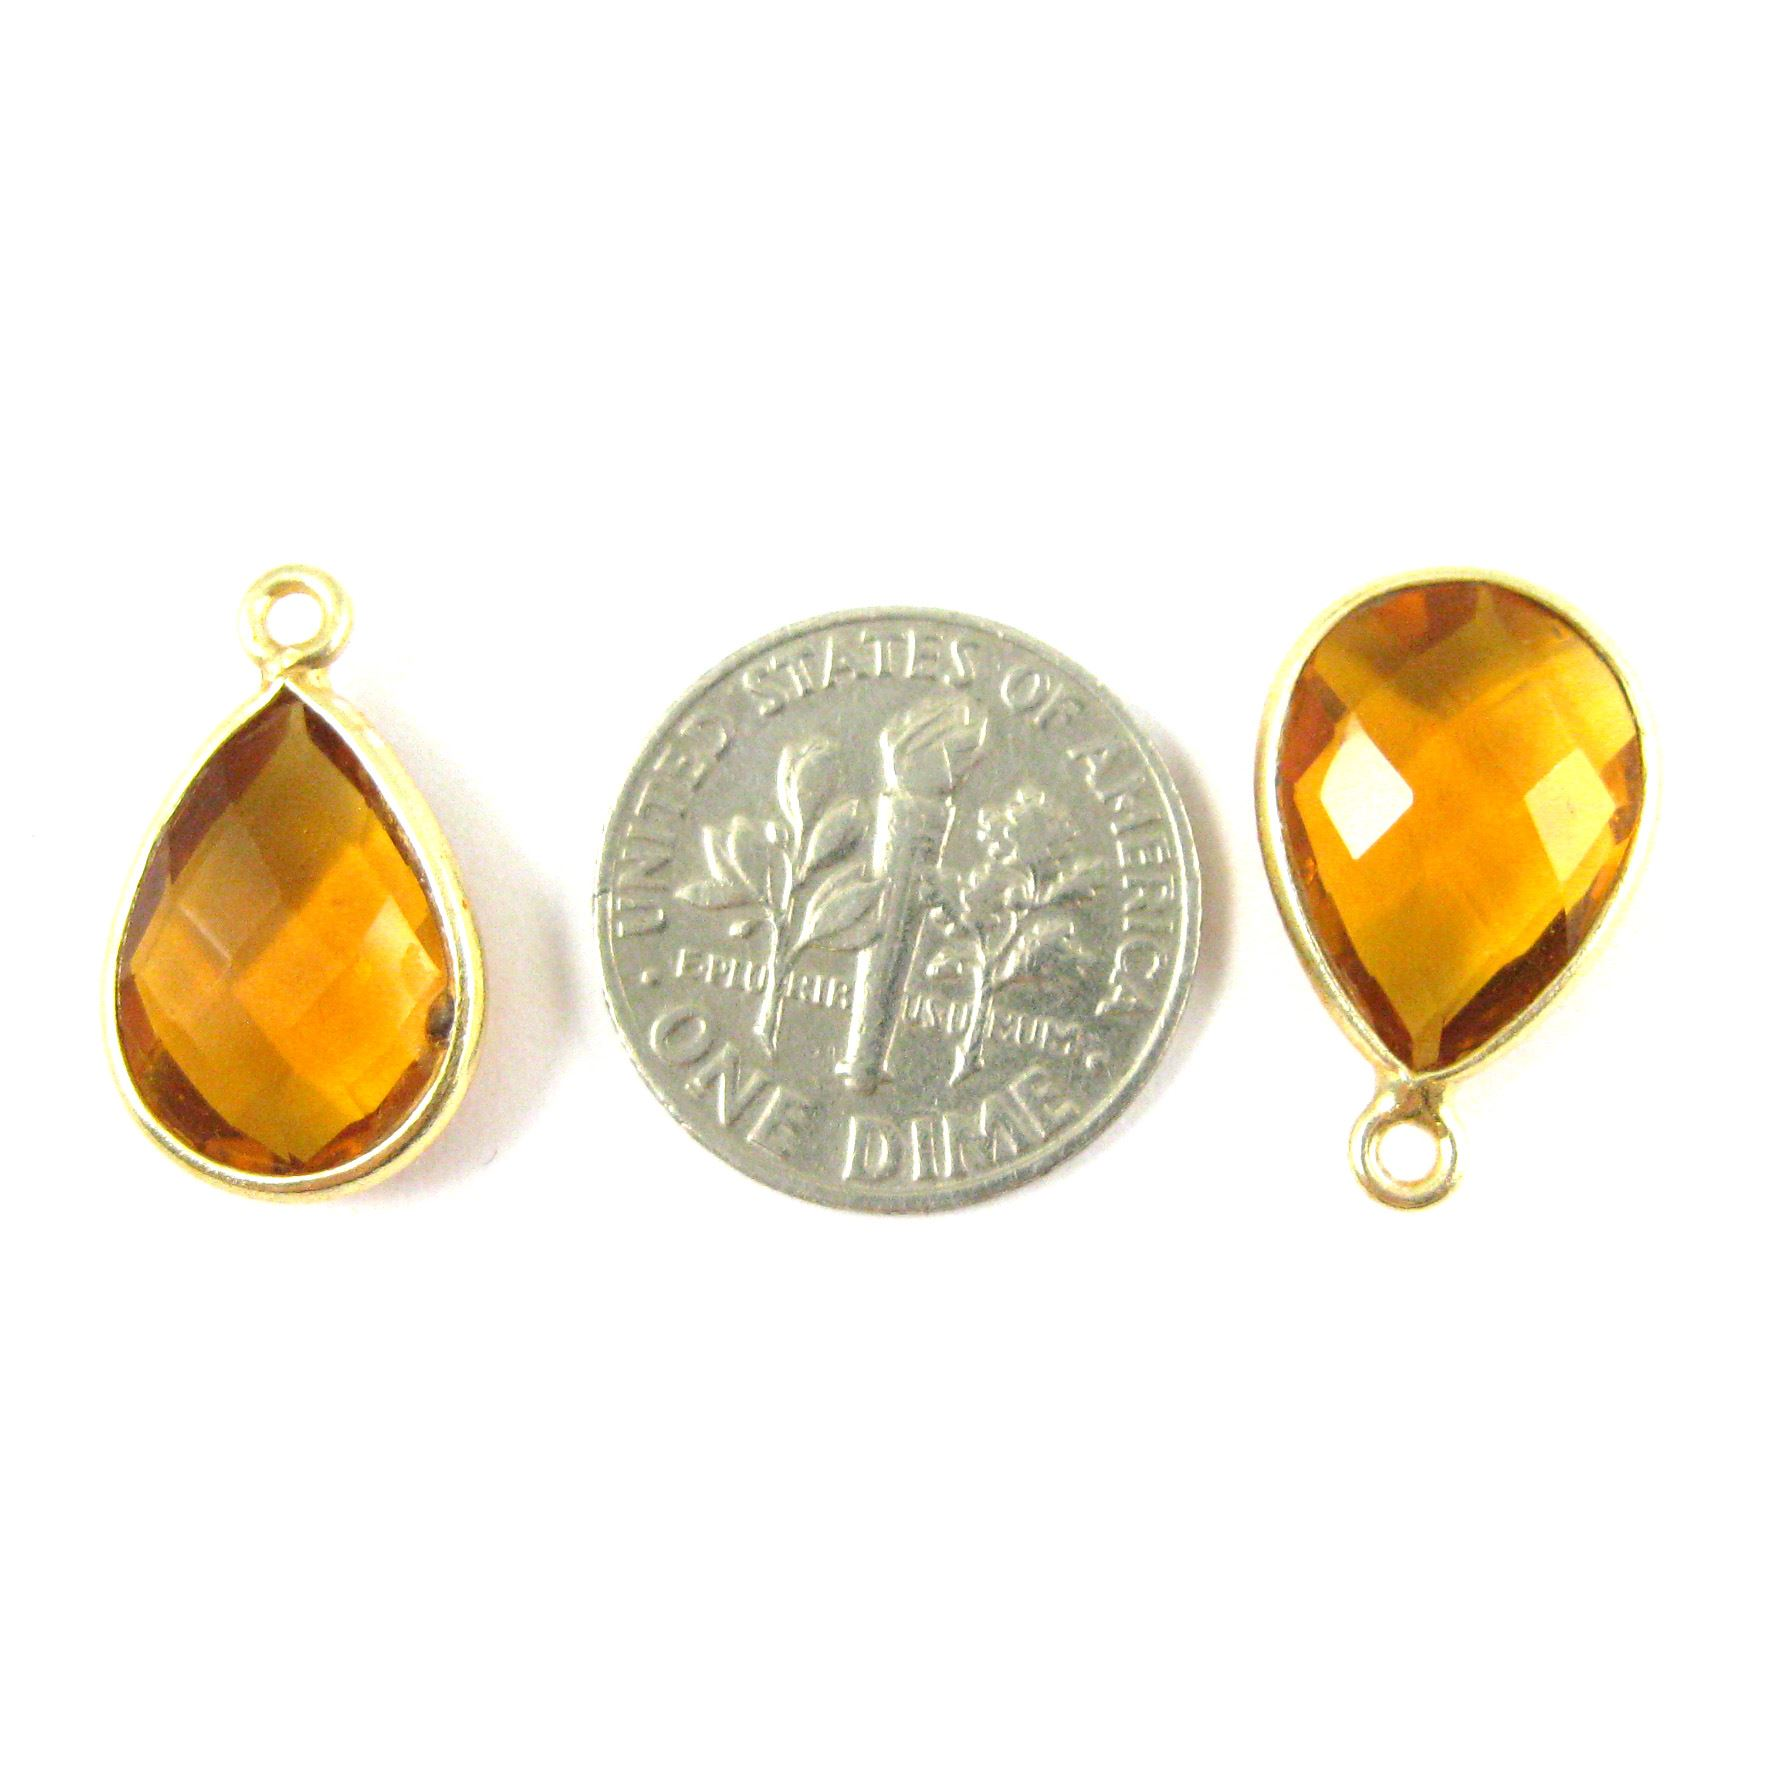 Bezel Gemstone Pendant - 10x14mm Faceted Small Teardop Shape - Citrine Quartz (Sold per 2 pieces)